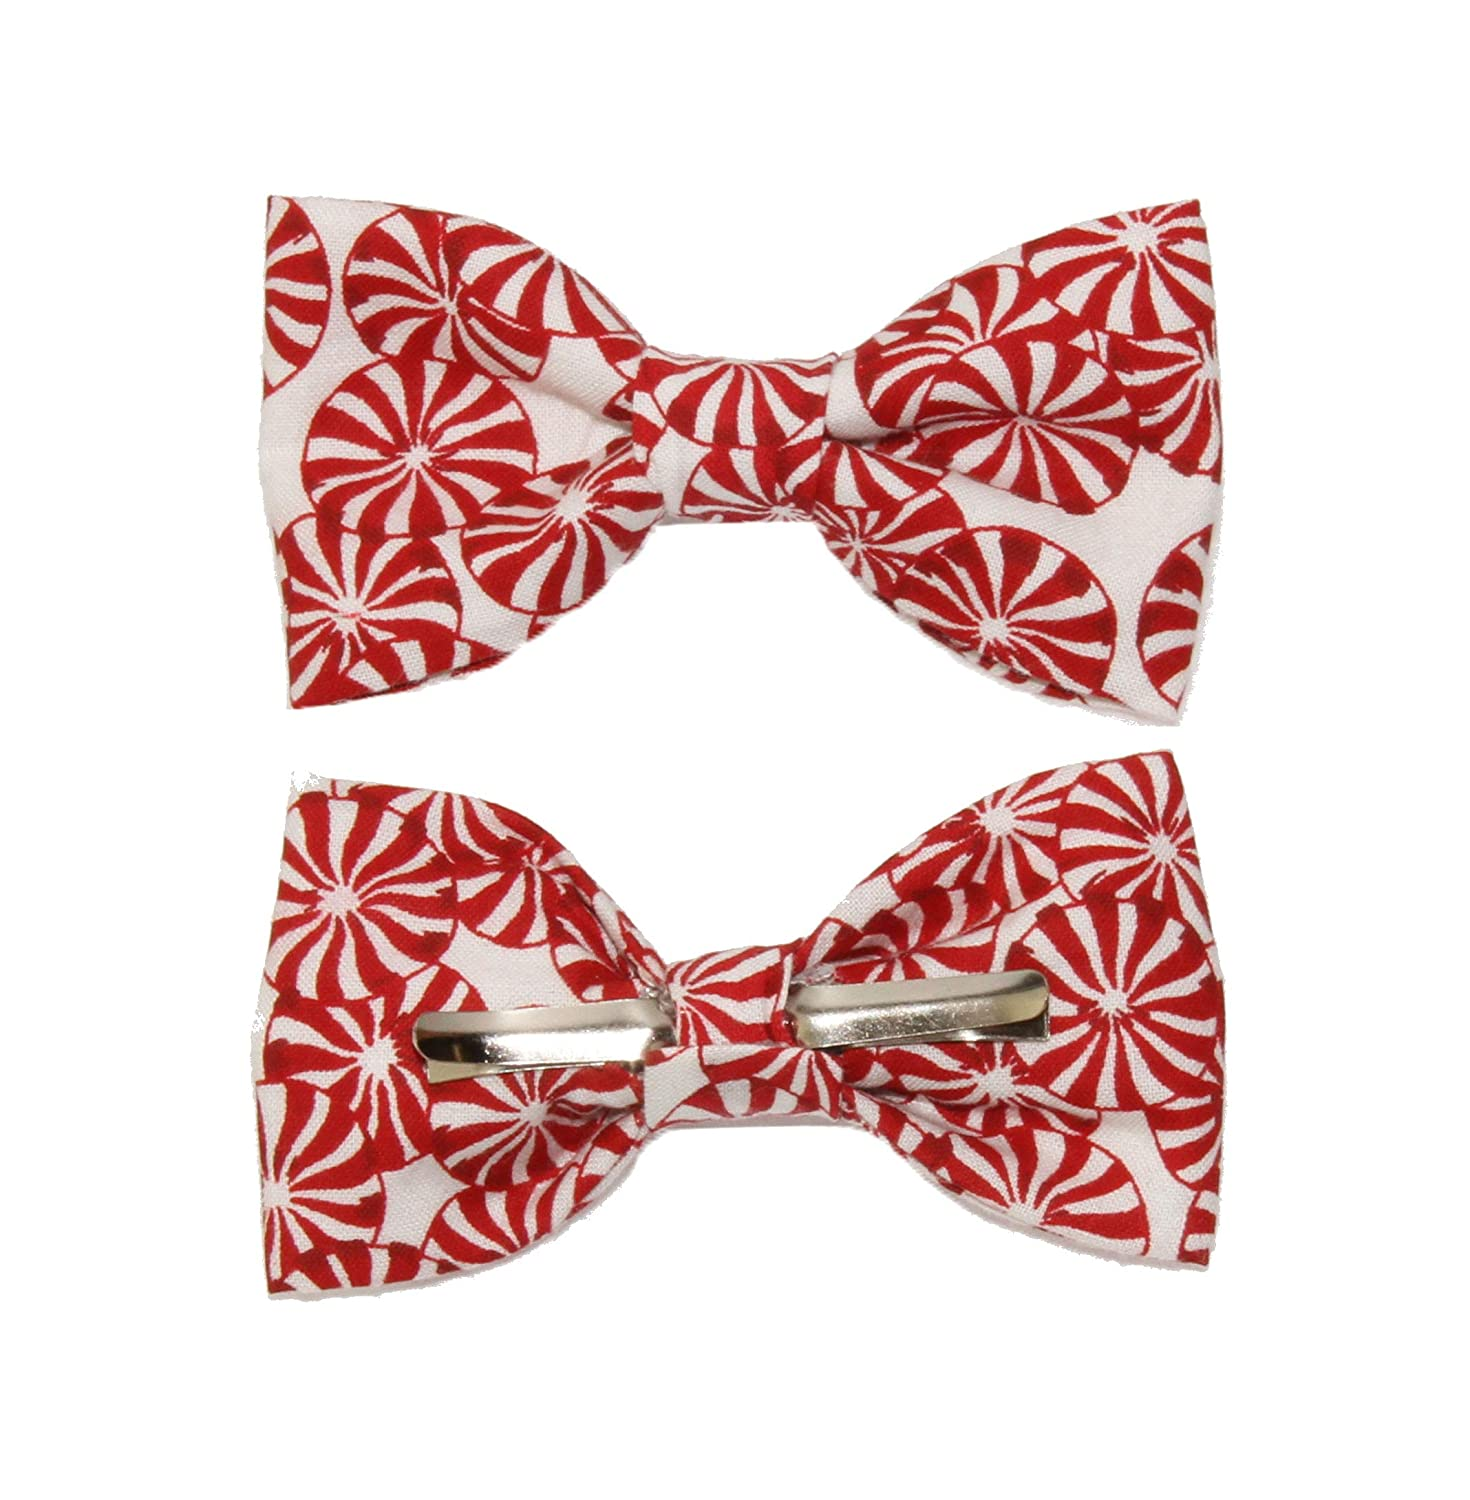 New Chocolate Candies Clip-On Cotton Bow Tie amy2004marie